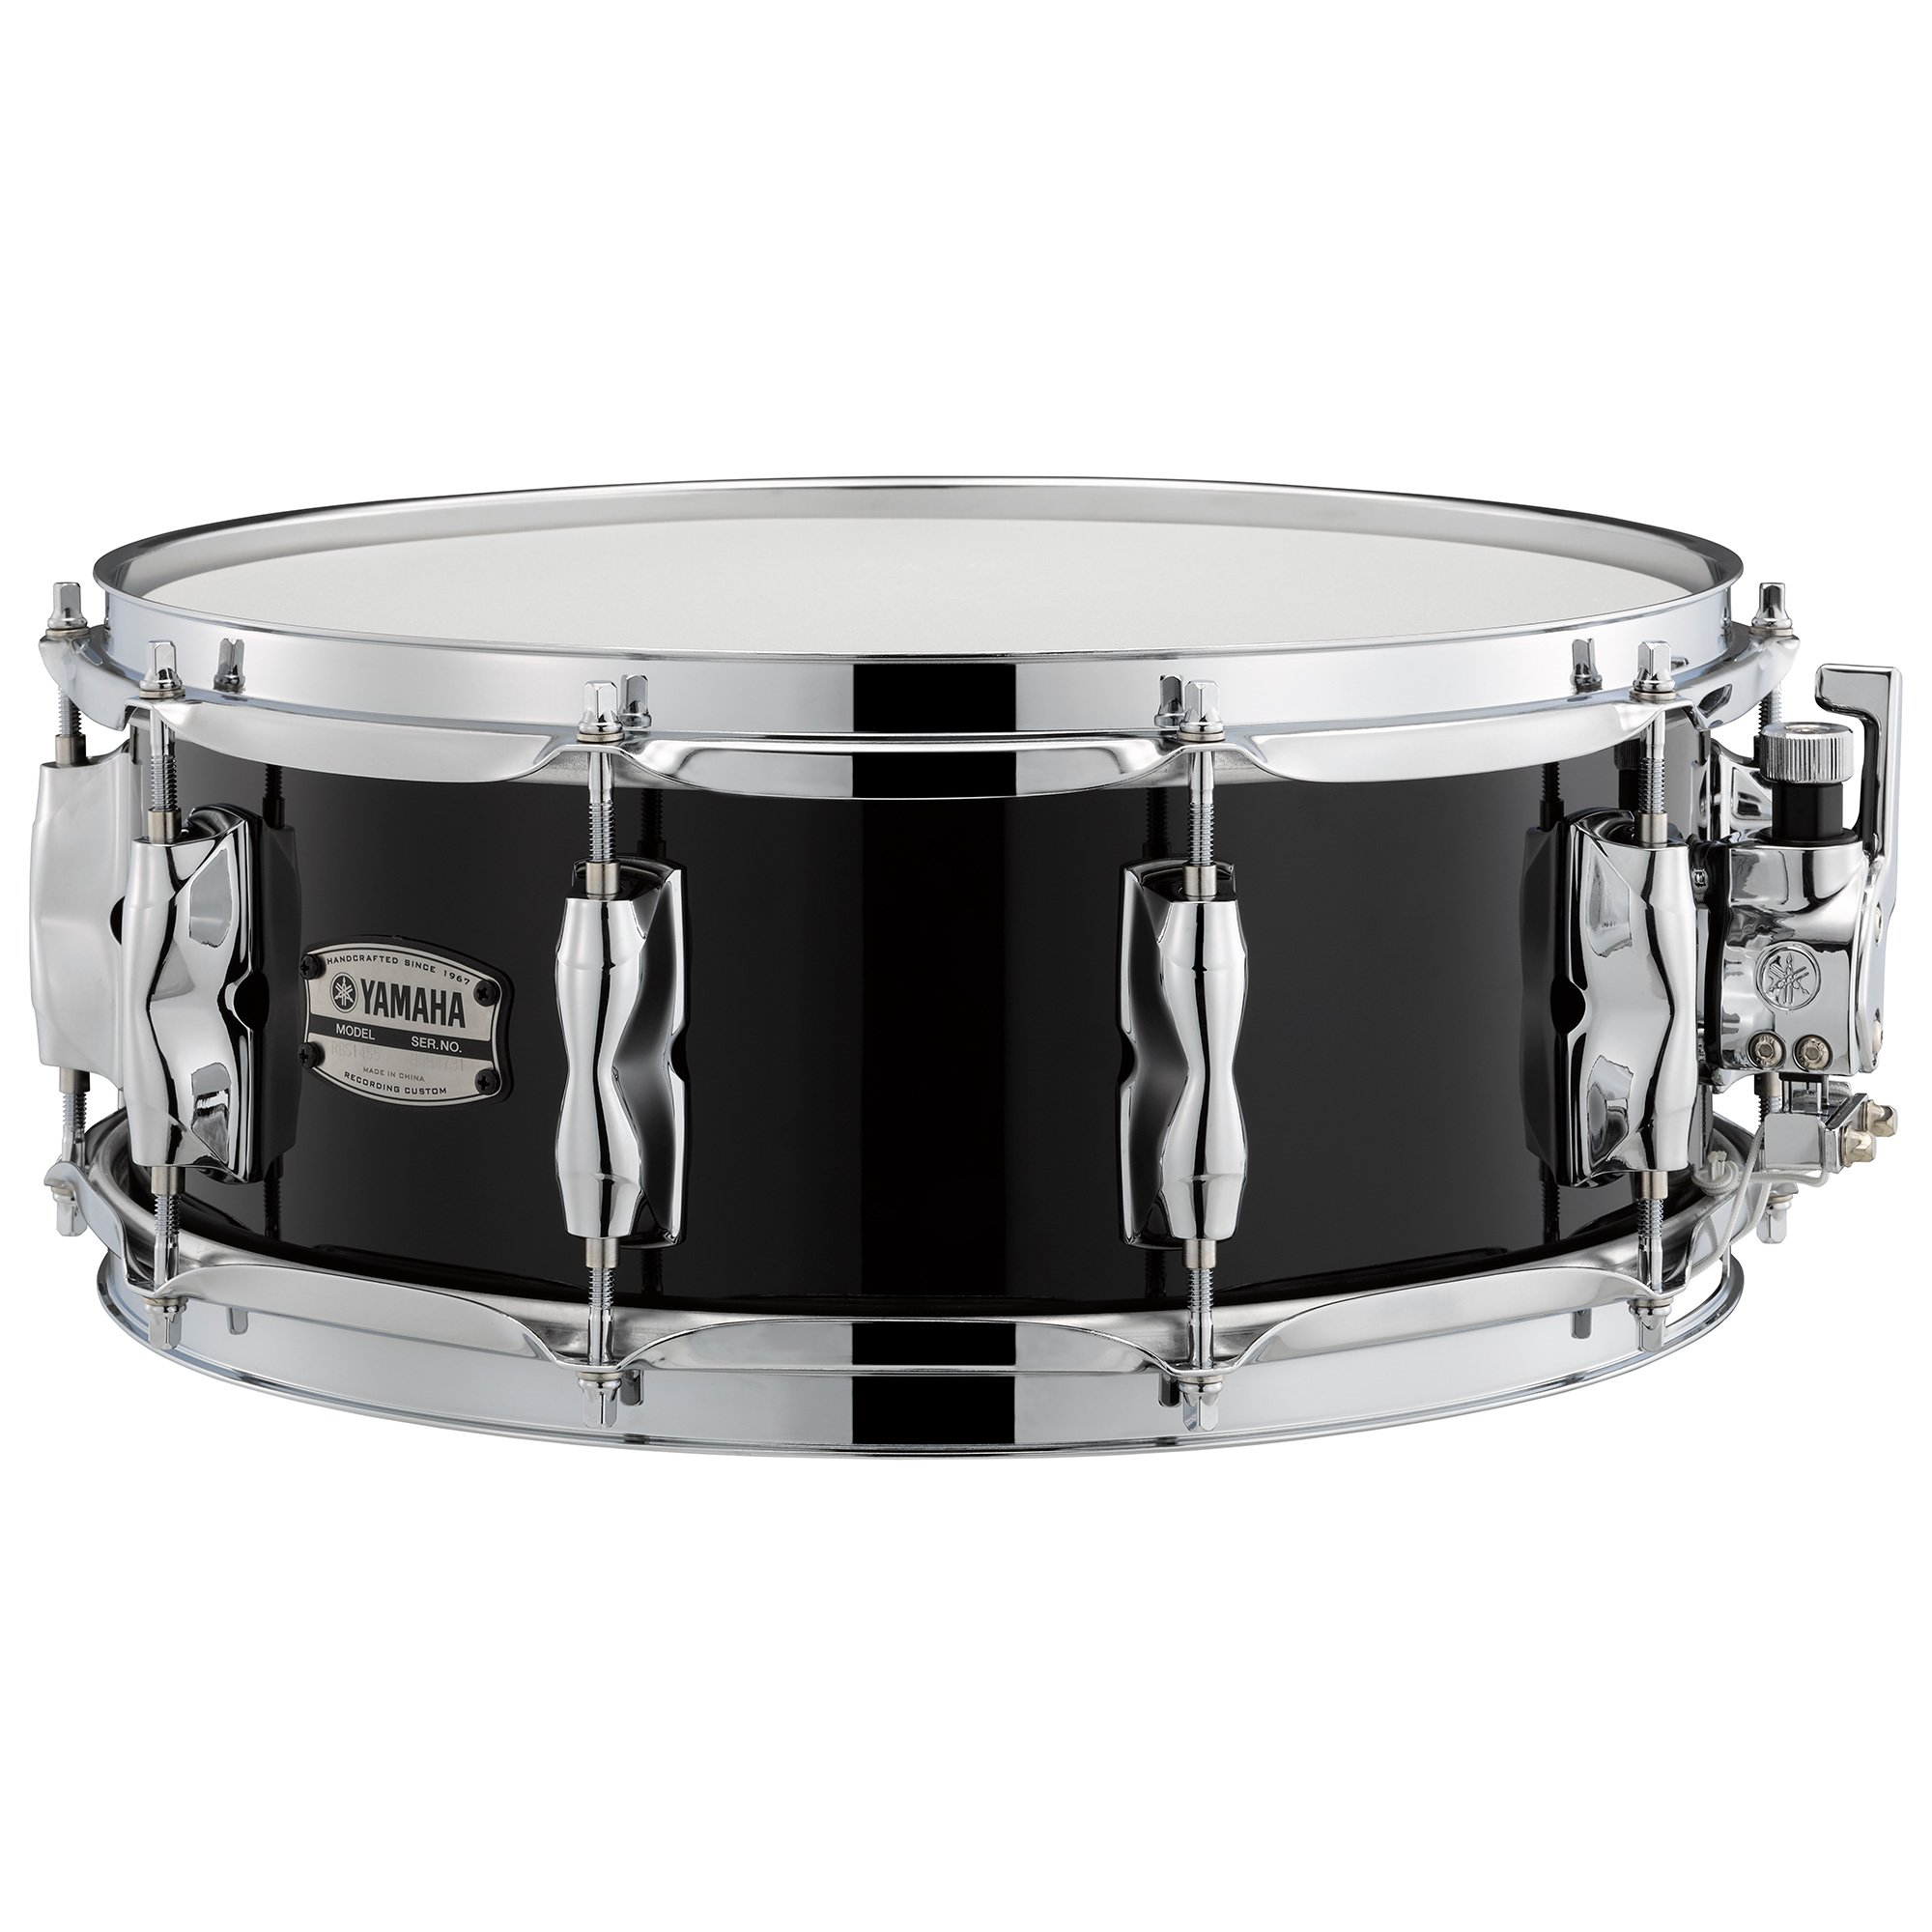 Yamaha RBS1455 Solid Black